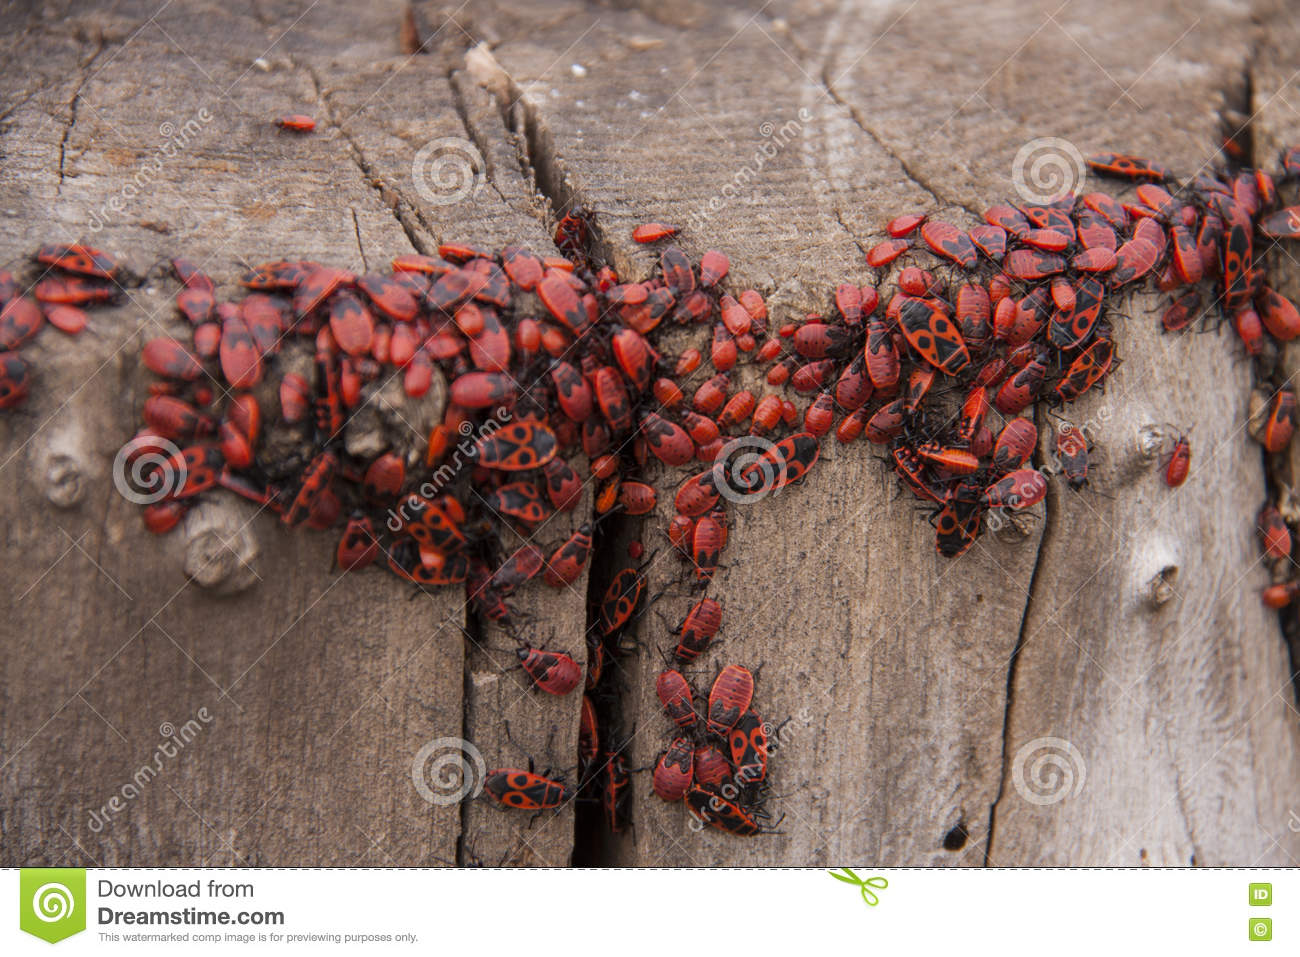 pyrrhocoris apterus oder wanze soldaten auf einem baum rot schwarze k fer stockbild bild von. Black Bedroom Furniture Sets. Home Design Ideas